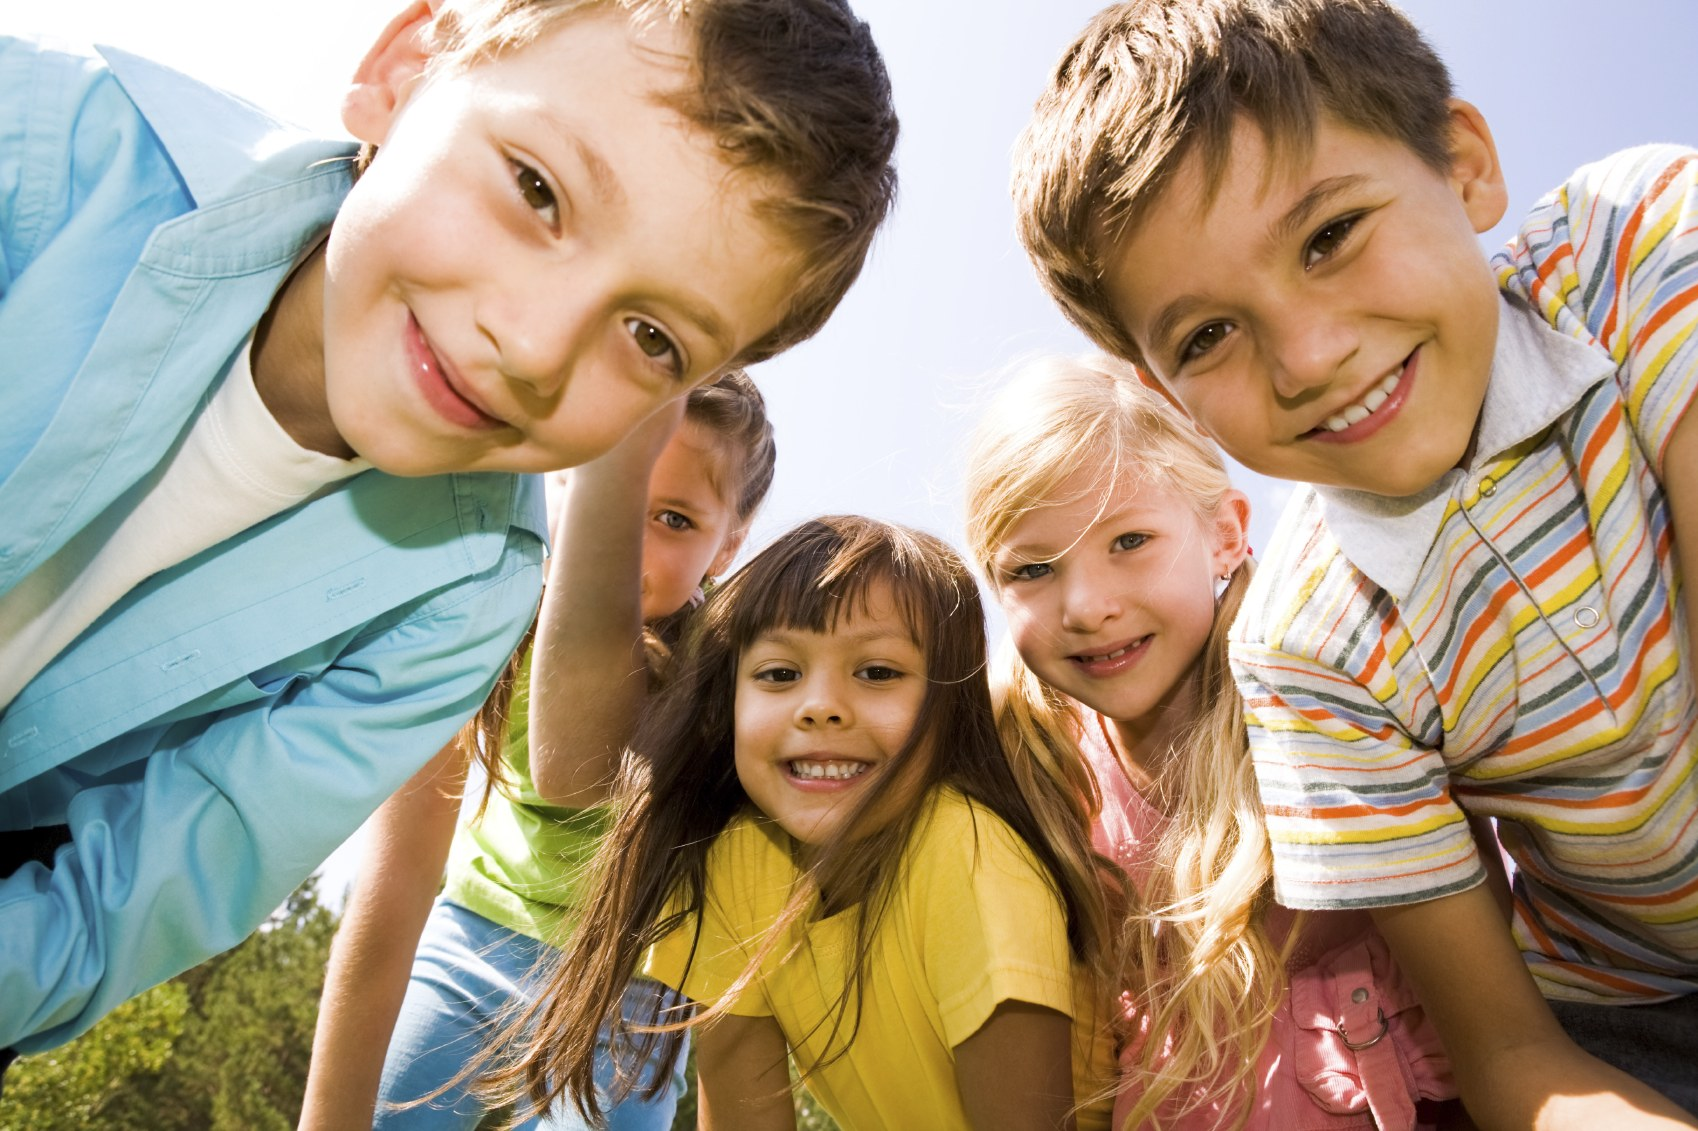 Experiential Learning for Kids - Maynineteen